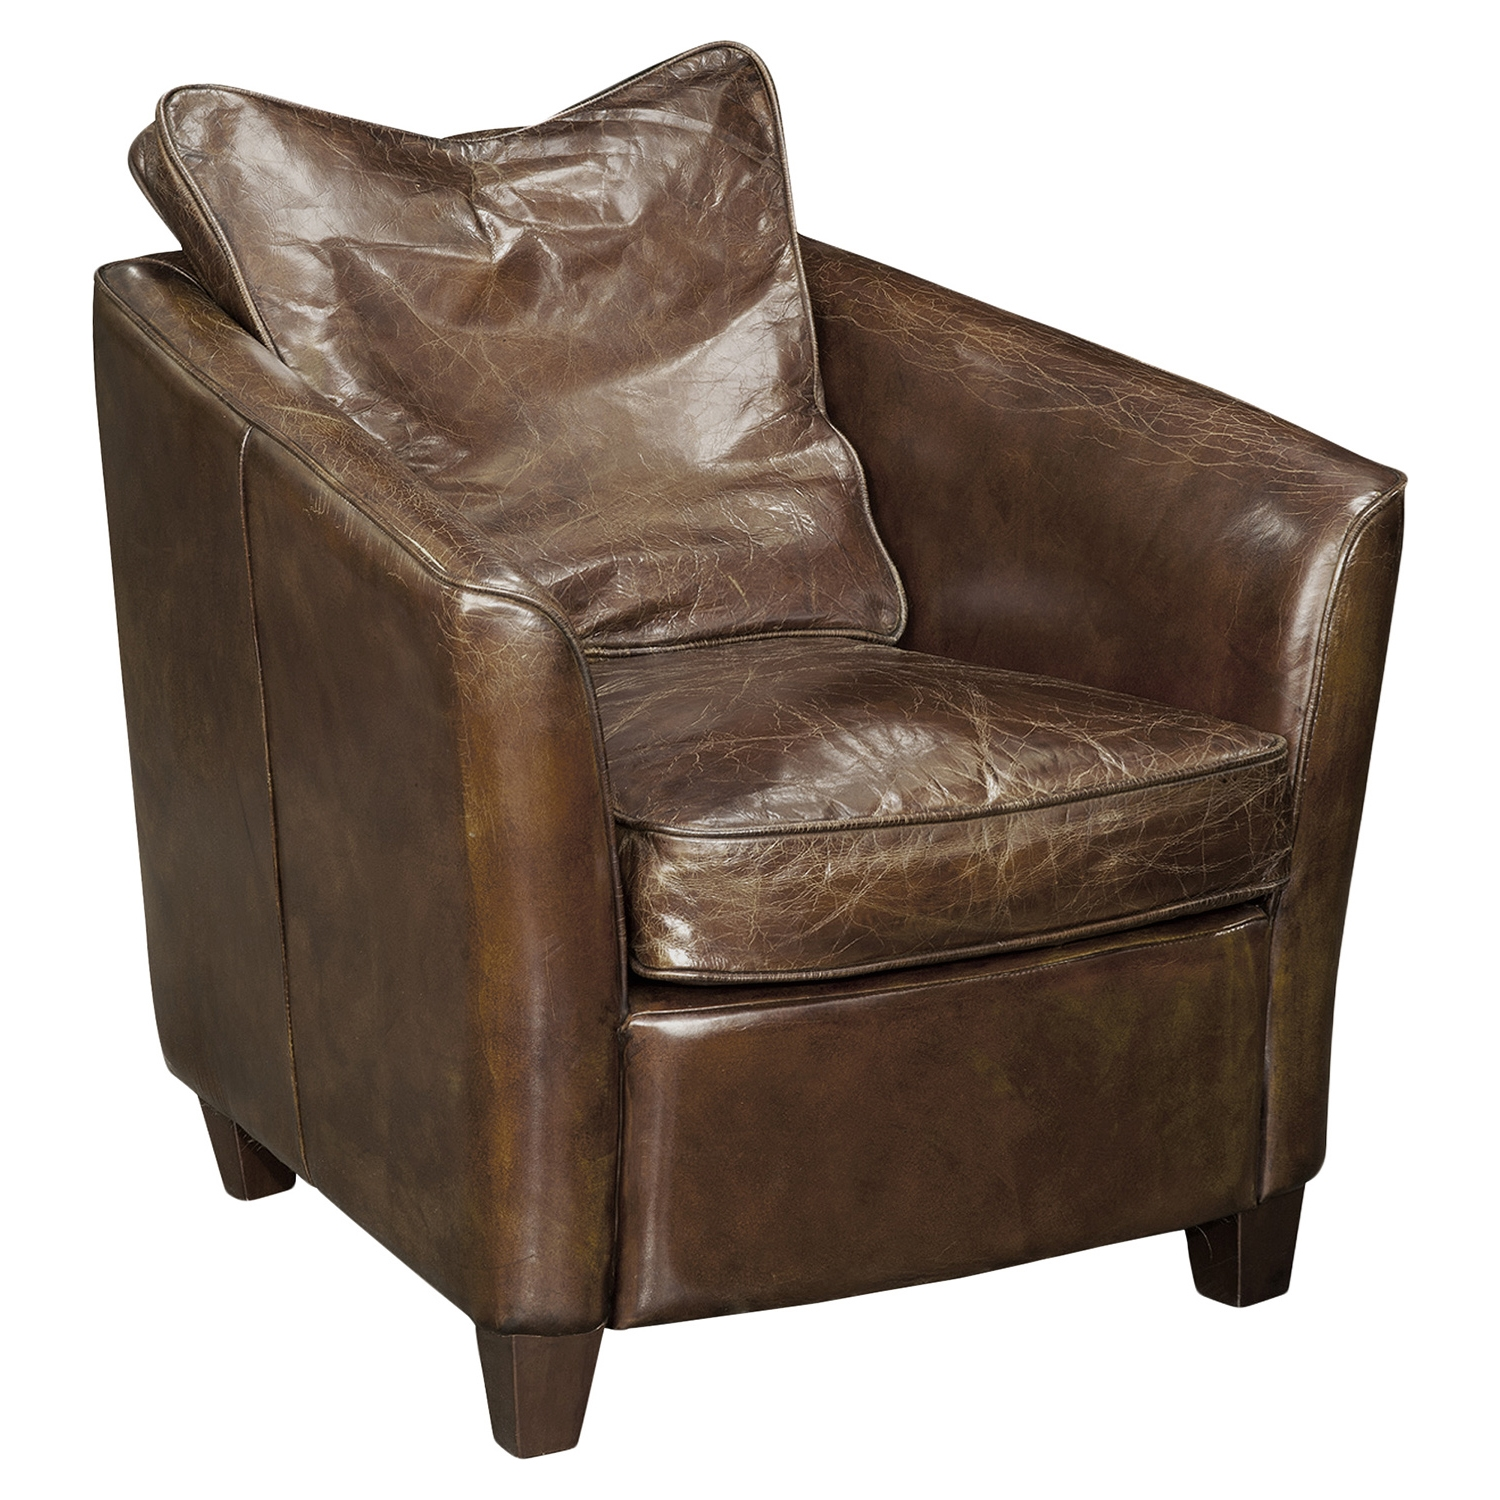 Charlston Club Chair - Dark Brown - MOES-PK-1001-20